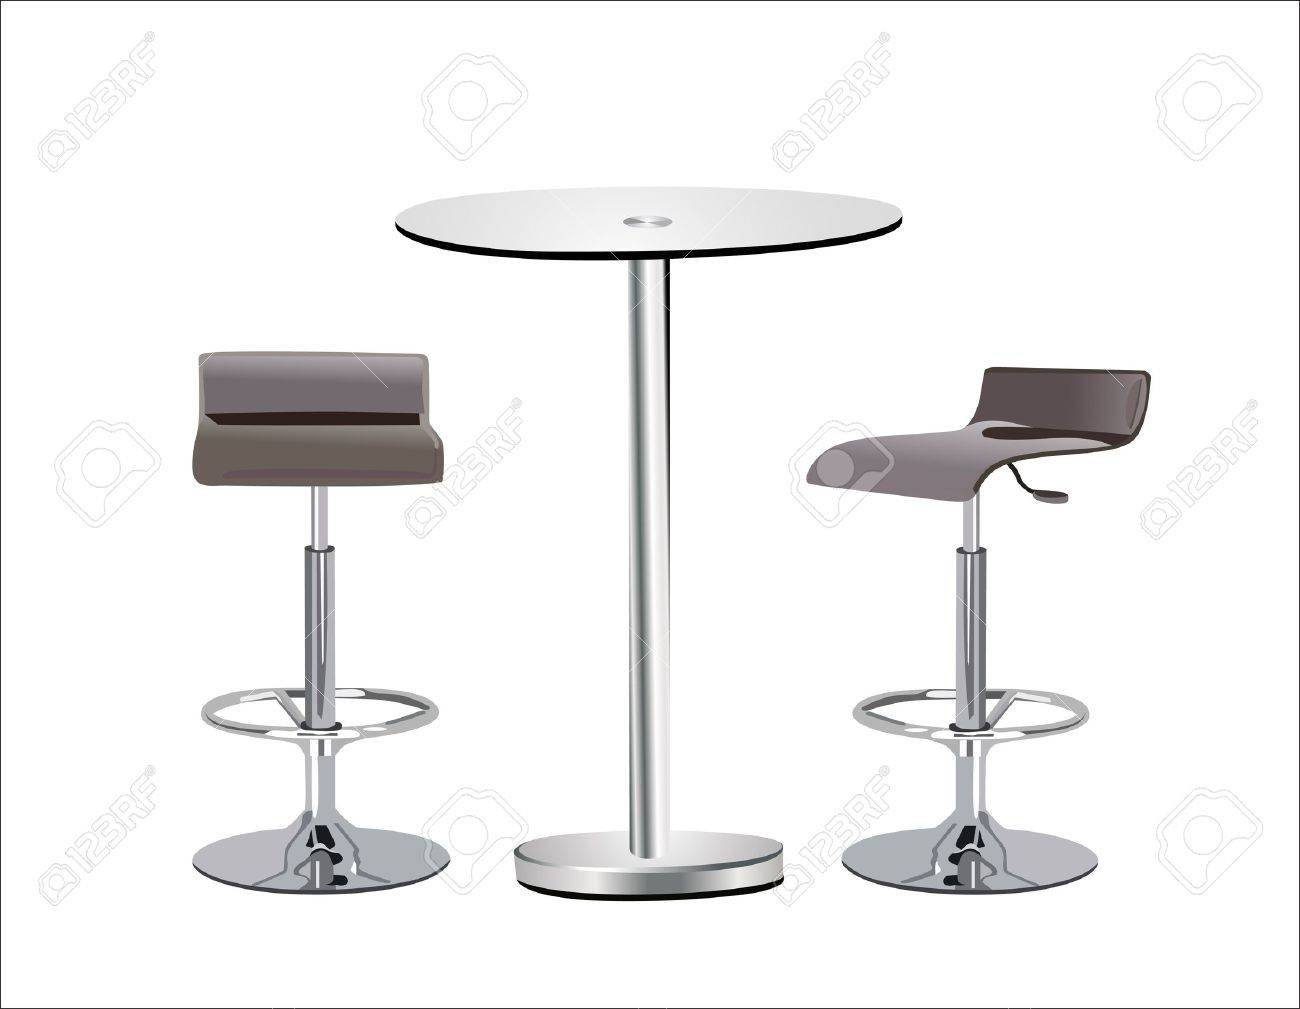 bar top tables with stools find this pin and more on bar stools  - high glass top table w chairs on white background stock vector